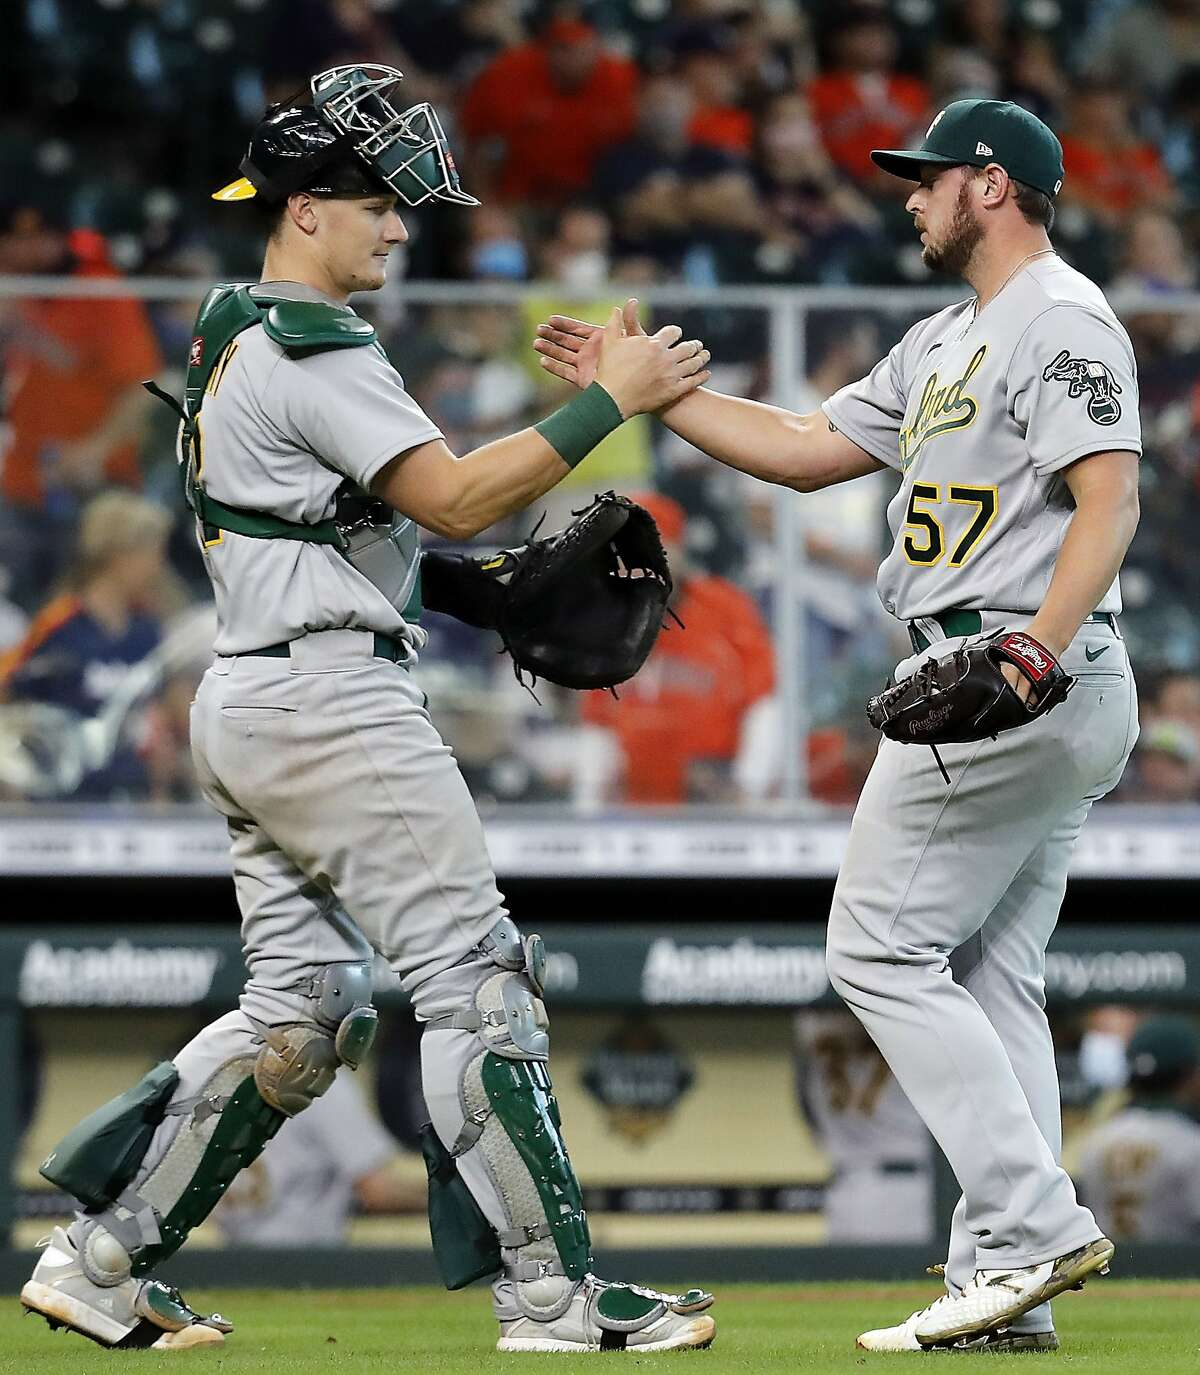 HOUSTON, TEXAS - APRIL 10: J.B. Wendelken #57 of the Oakland Athletics shakes hands with Sean Murphy #12 as they defeated the Houston Astros at Minute Maid Park on April 10, 2021 in Houston, Texas. (Photo by Bob Levey/Getty Images)